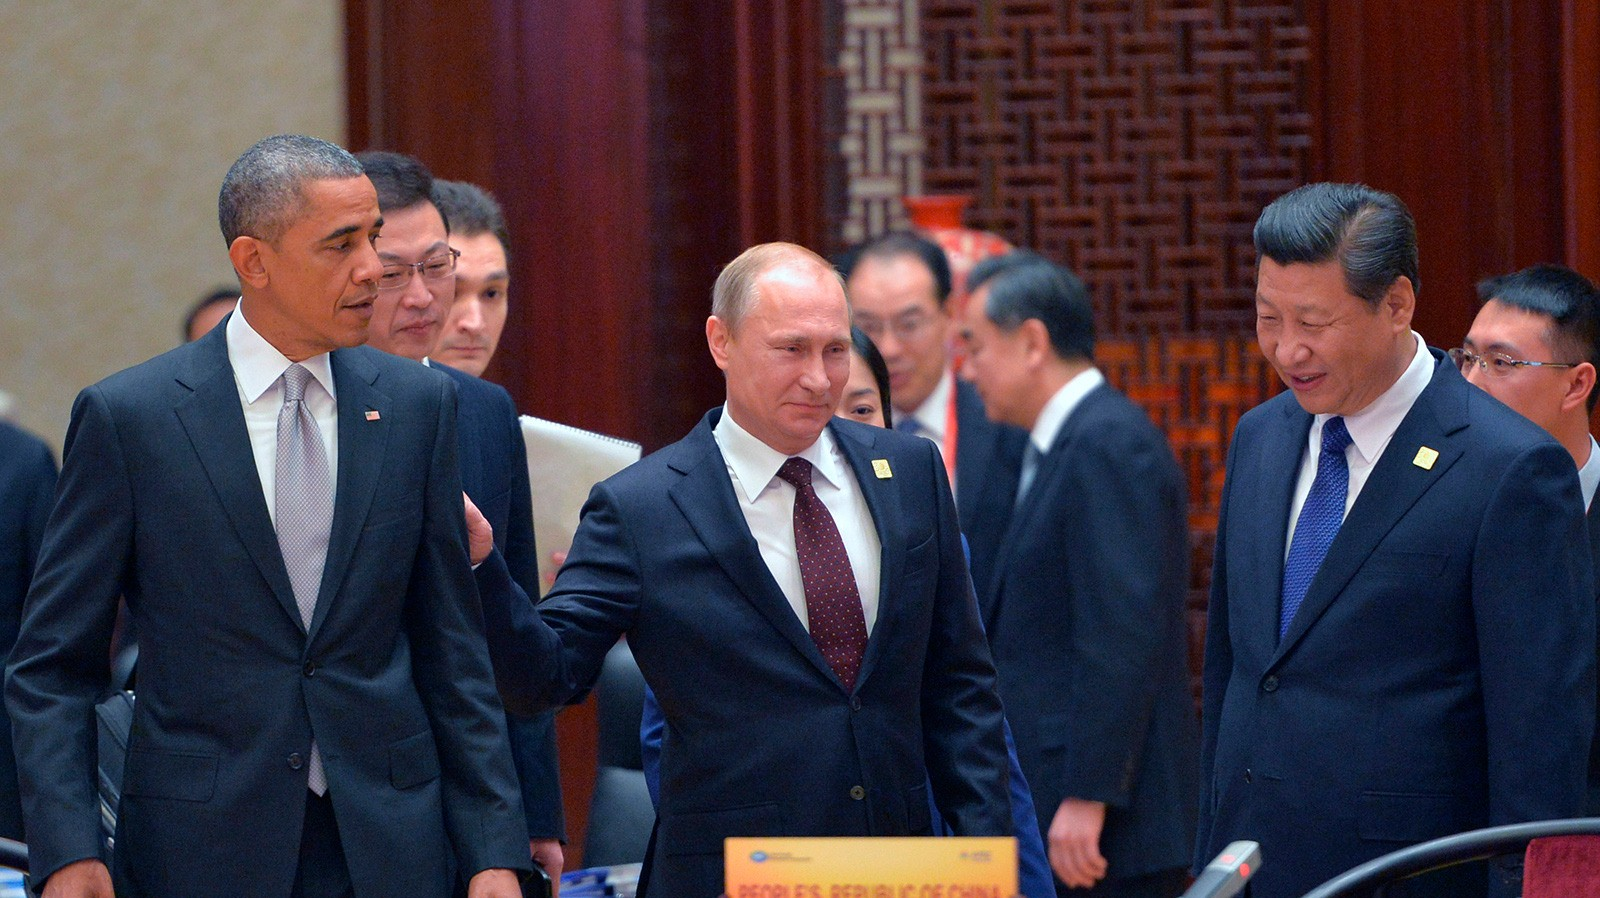 Are Russia and China Really Serious, Or Just Hooking Up?